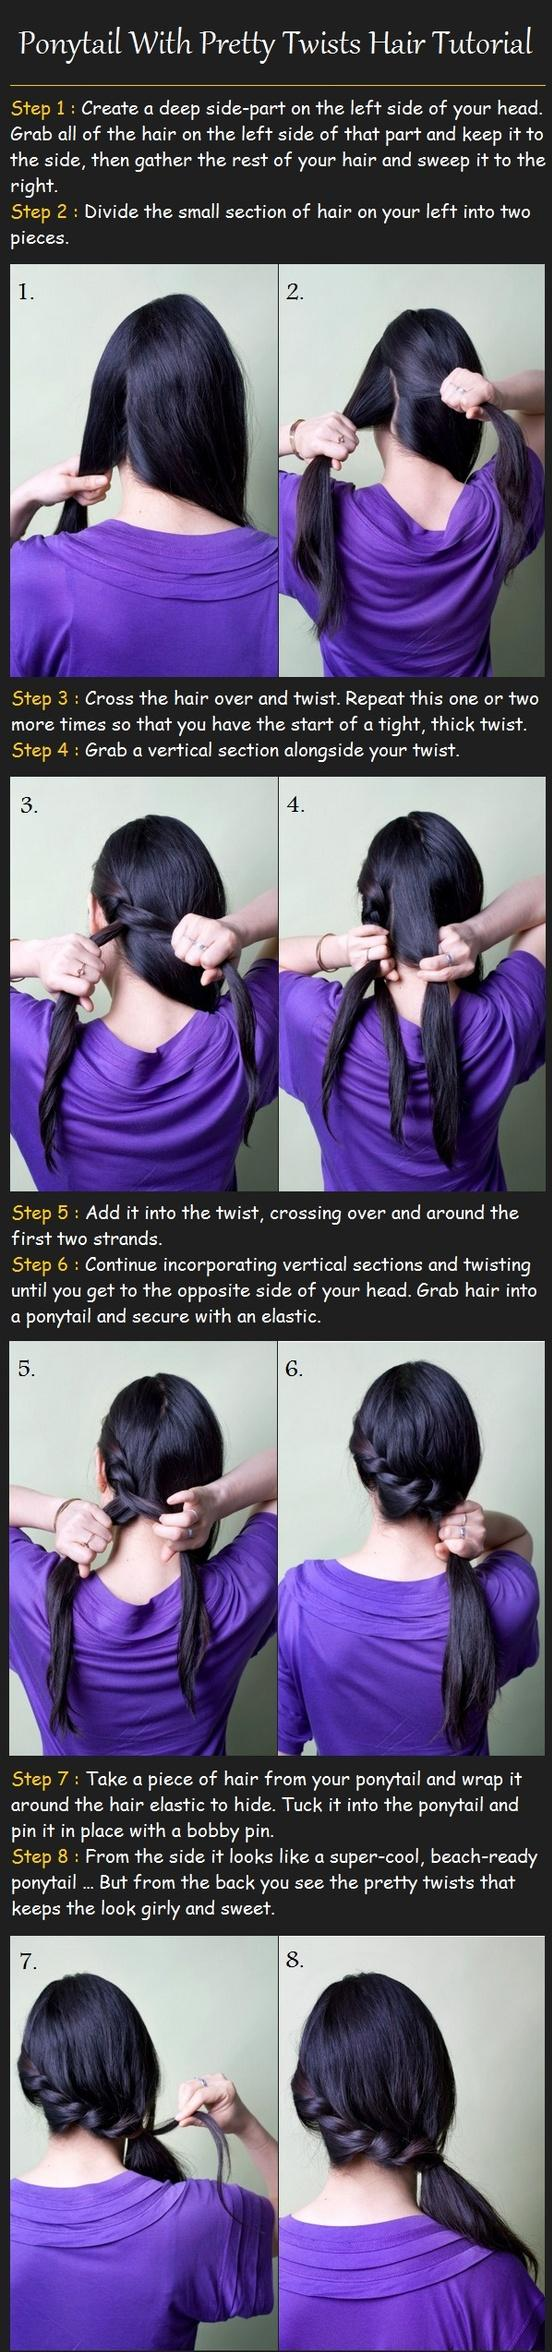 Ponytail-With-Twists-Hair-Tutorial